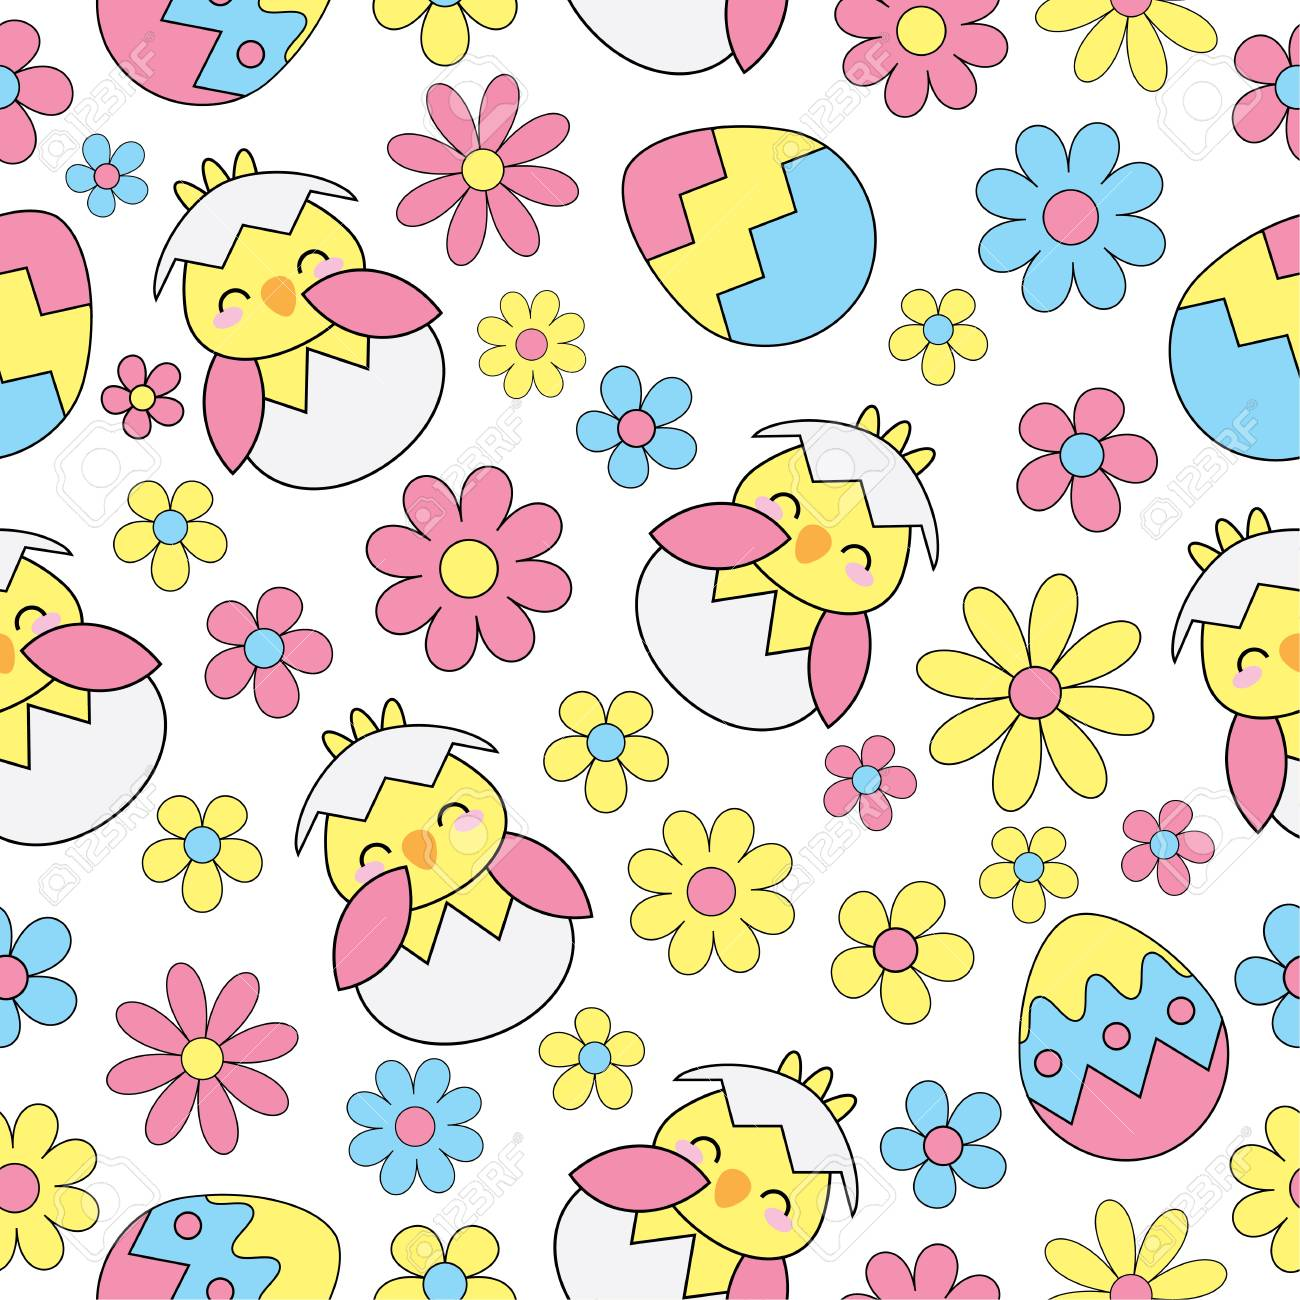 Easter Seamless Background With Cute Chick Eggs And Flowers